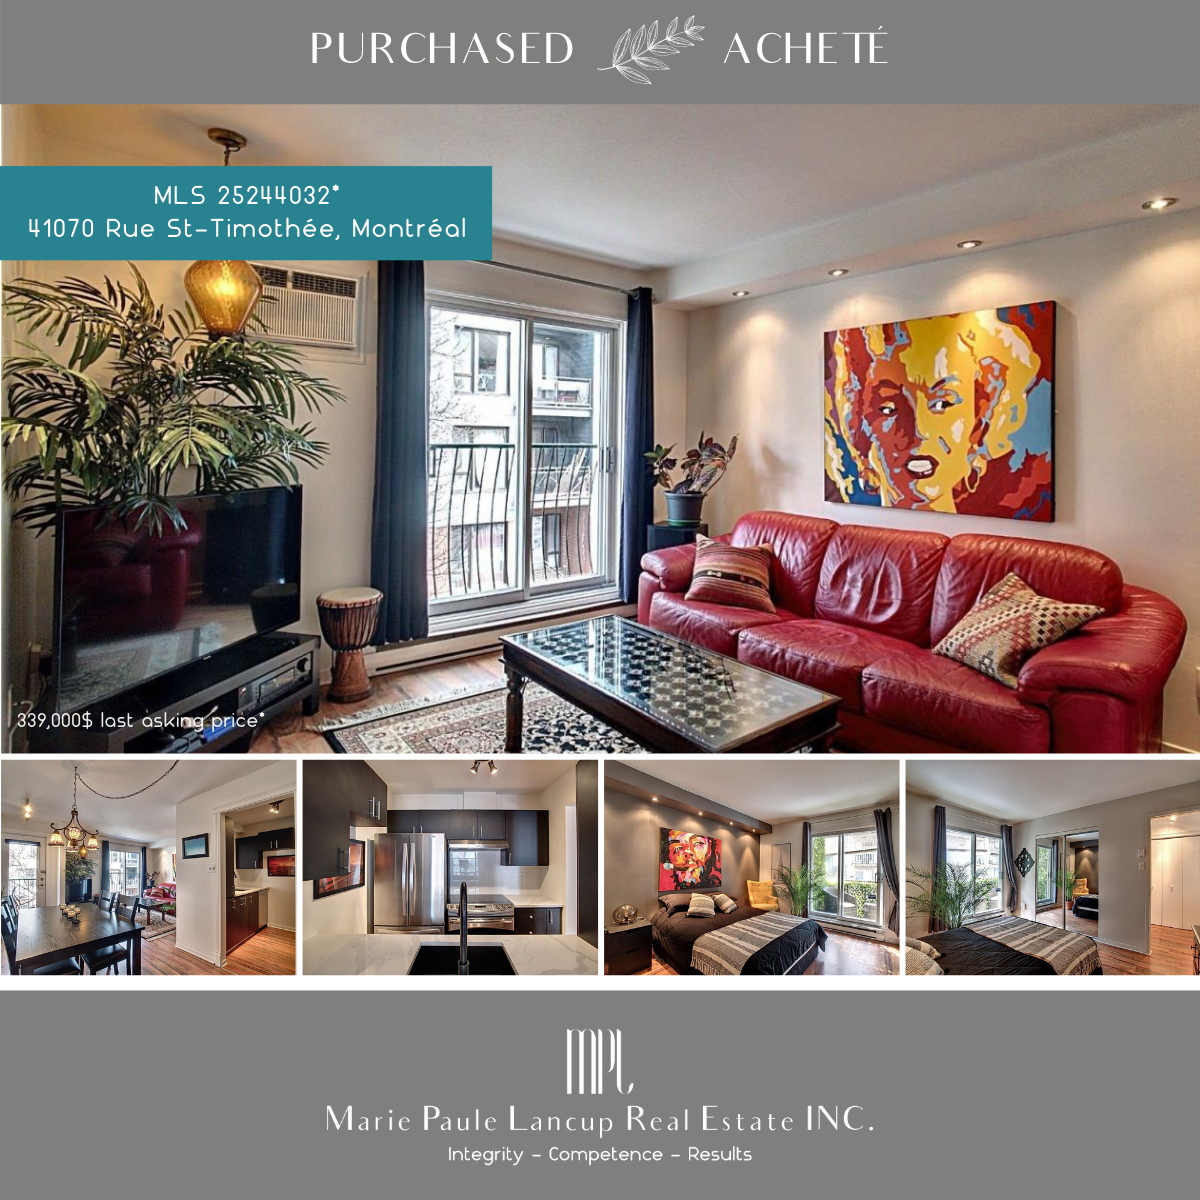 Marie Paule Lancup Real Estate Inc - 1070 Rue St-Timothée PURCHASED